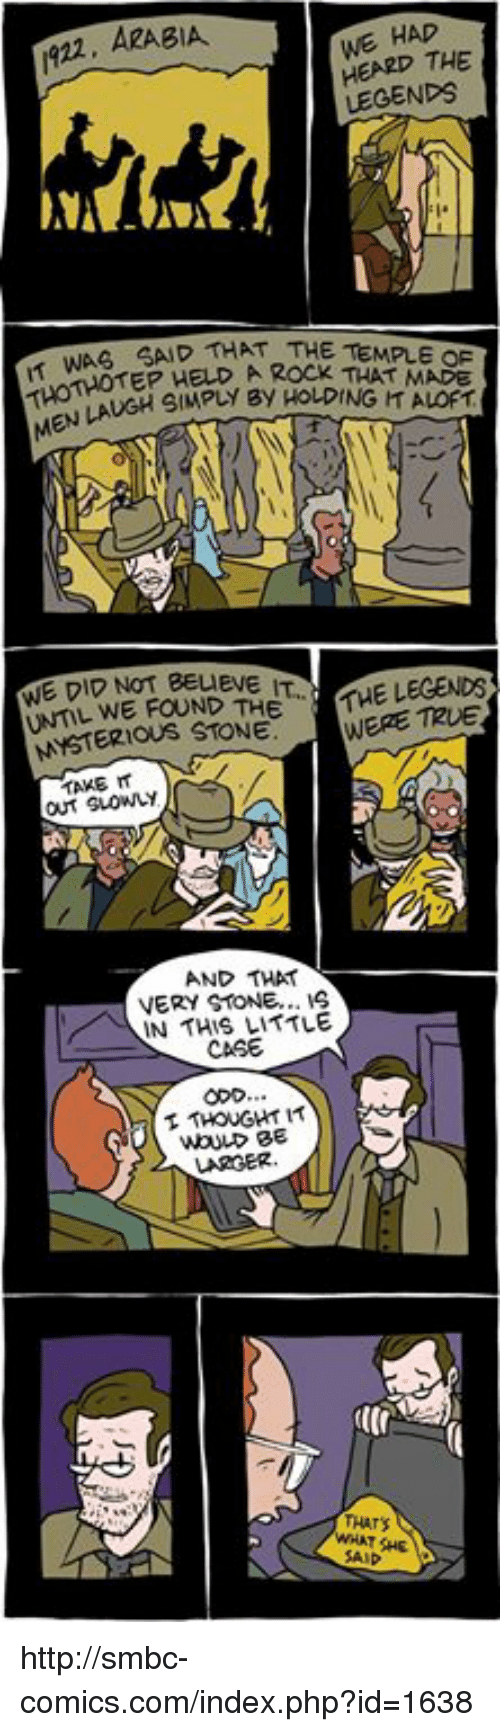 Smbc Comic: WE HAD  1922, ARABIA.  THE  LEGENDS  WAS SAD THAT THE TEMPLE HELD, A Rock MADE  WE DID NOT BEUEVE  THE LEGENDS  FOUND THE  MYSTERIOUS STONE.  WERE out Guowy  AND THAT  VERY STONE...  IN THIS LITTLE  CASE  THOUGHT IT http://smbc-comics.com/index.php?id=1638